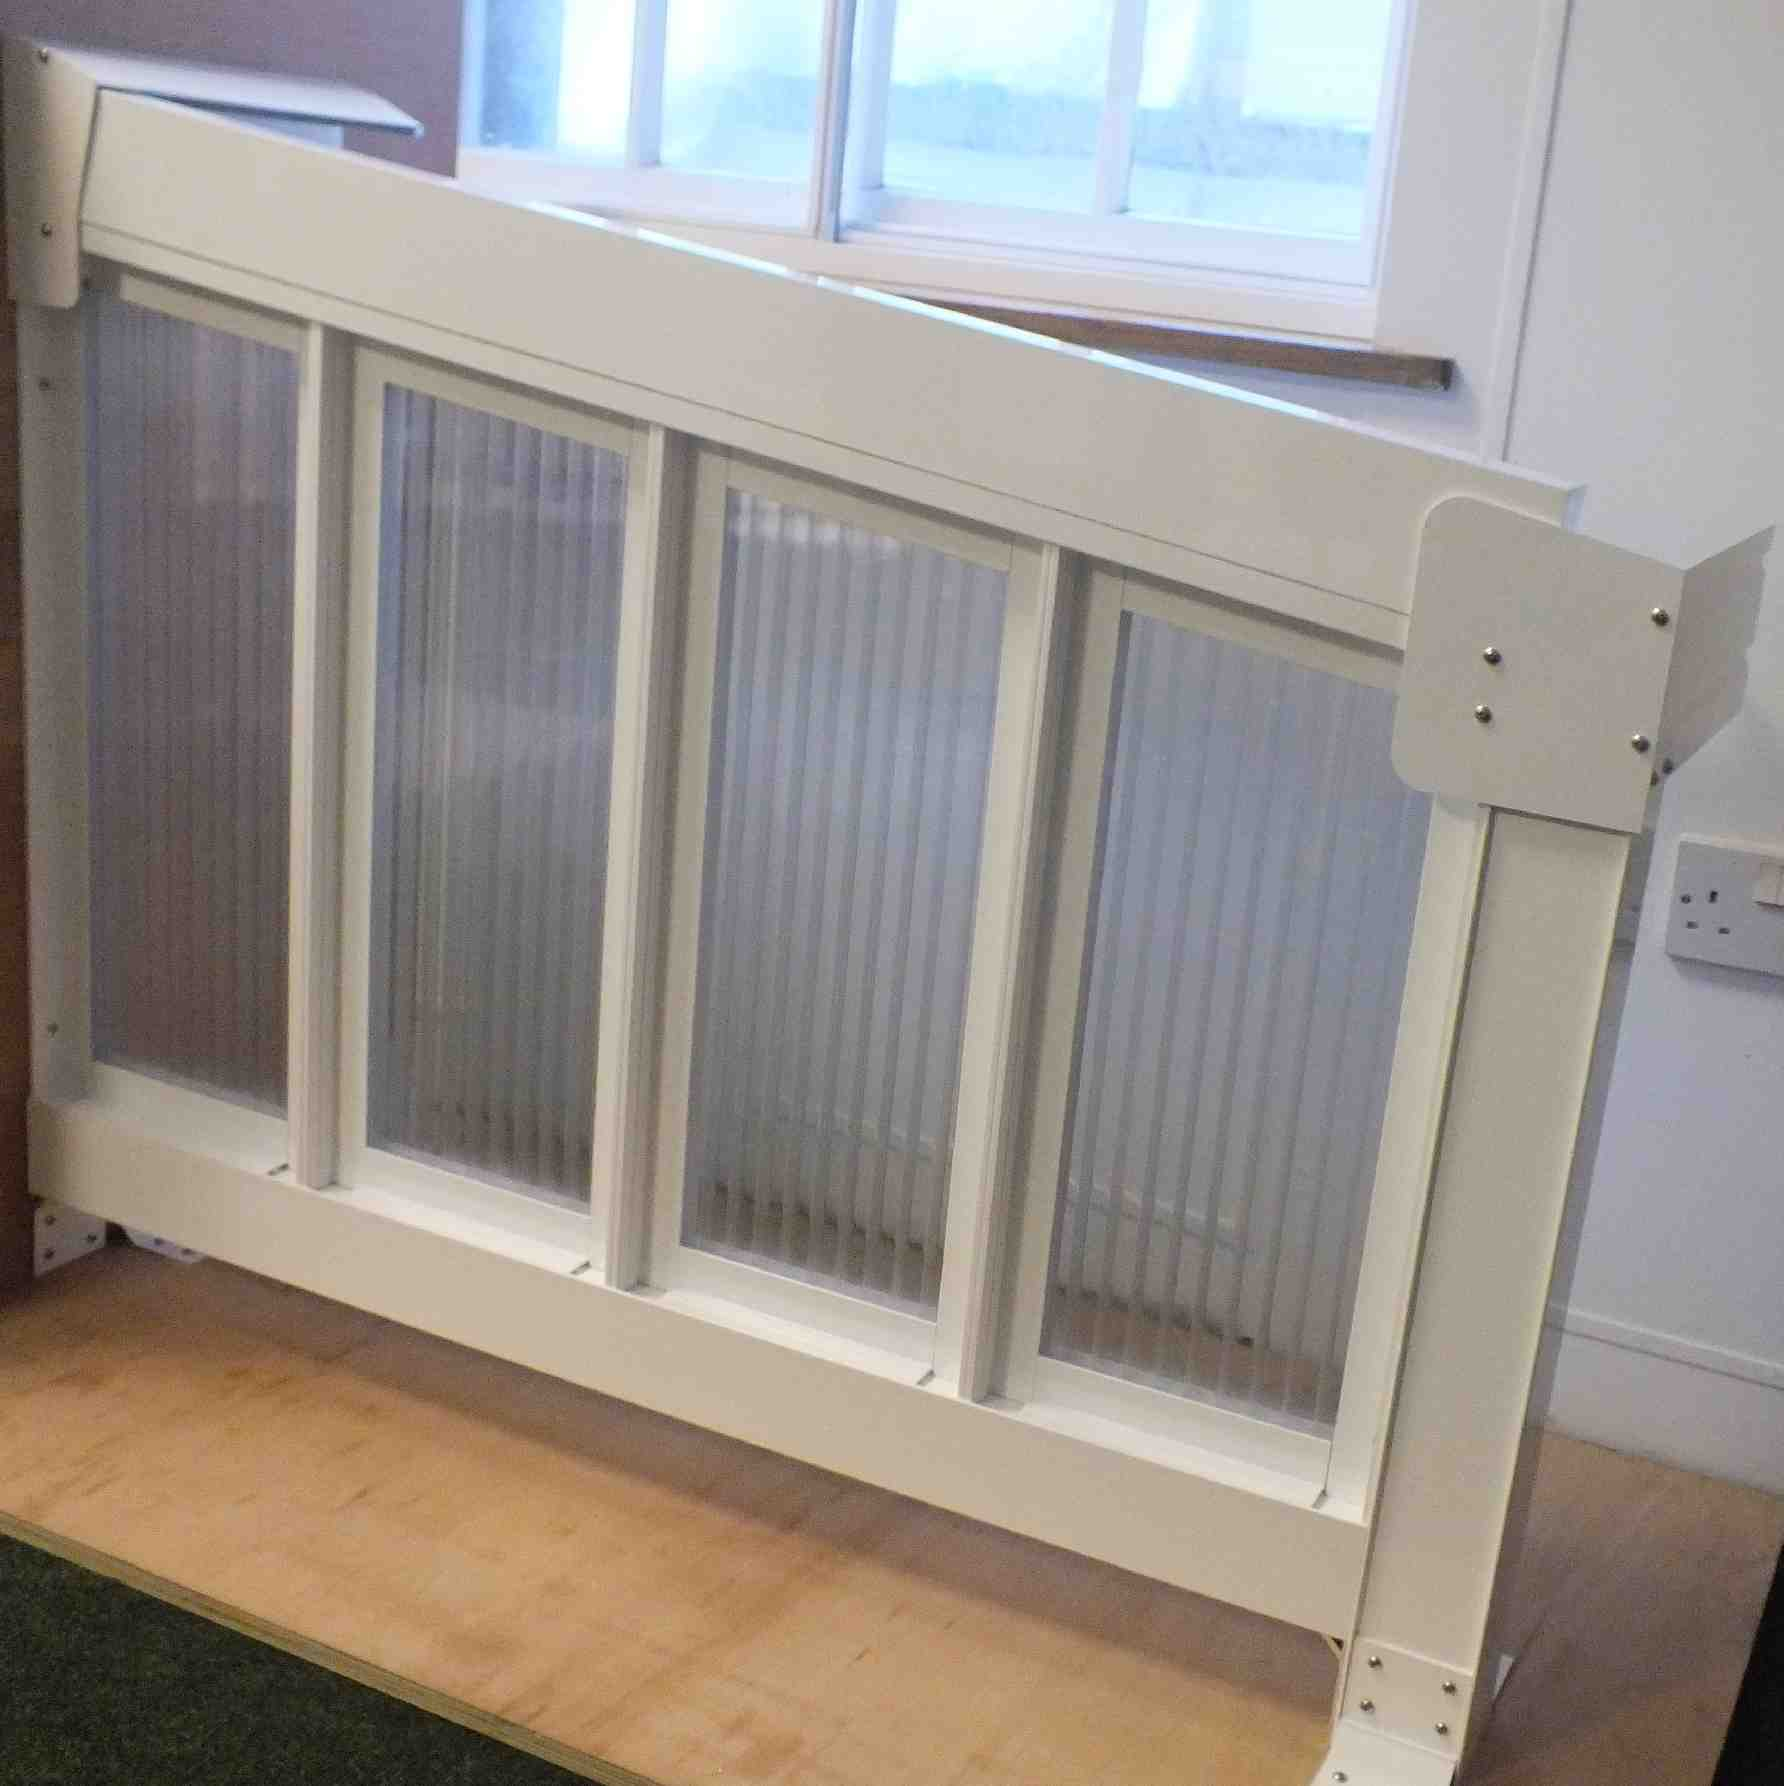 Buy Omega Smart Canopy - FULL Side In-Fill Section for Sides of Canopy, 16mm Polycarbonate In-Fill Panels, White Frame online today